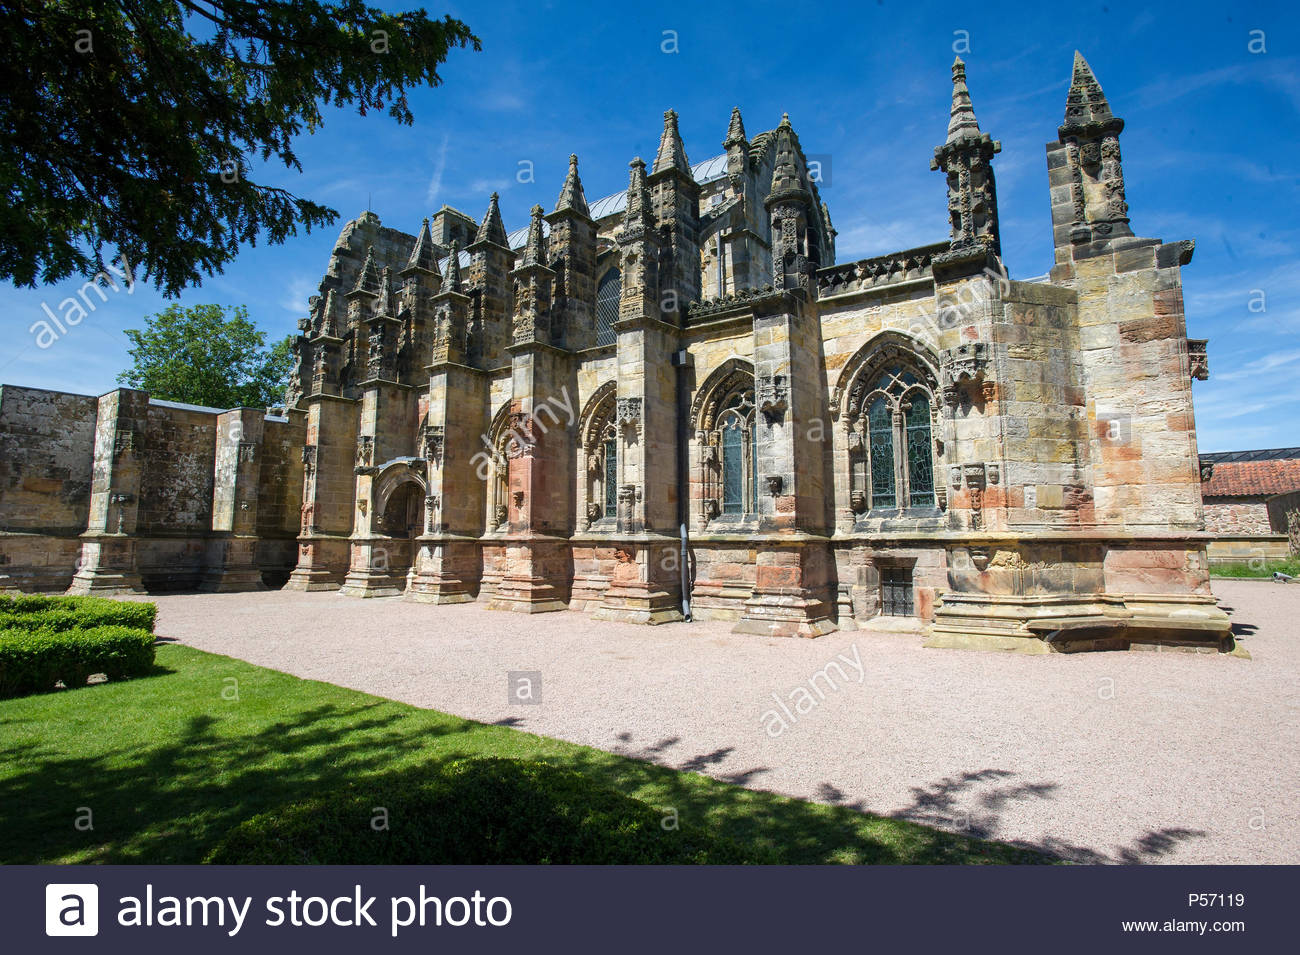 Exterior view of Rosslyn chapel, Roslin, Midlothian, Scotland. - Stock Image